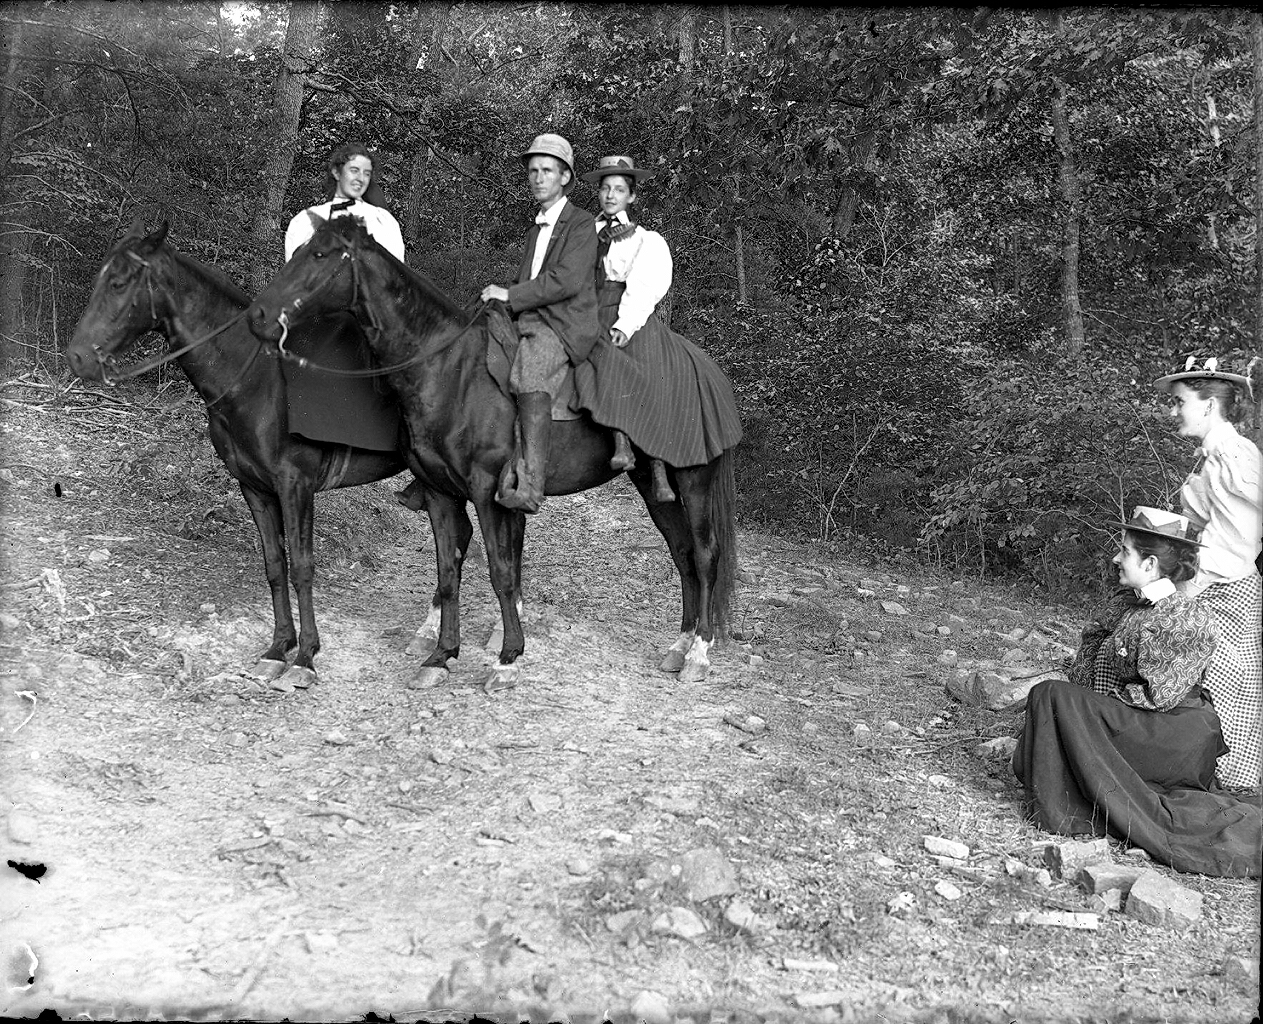 IMage of Susan and John, Jr. on horseback with young lady behind John, Jr. and two other ladies nearby